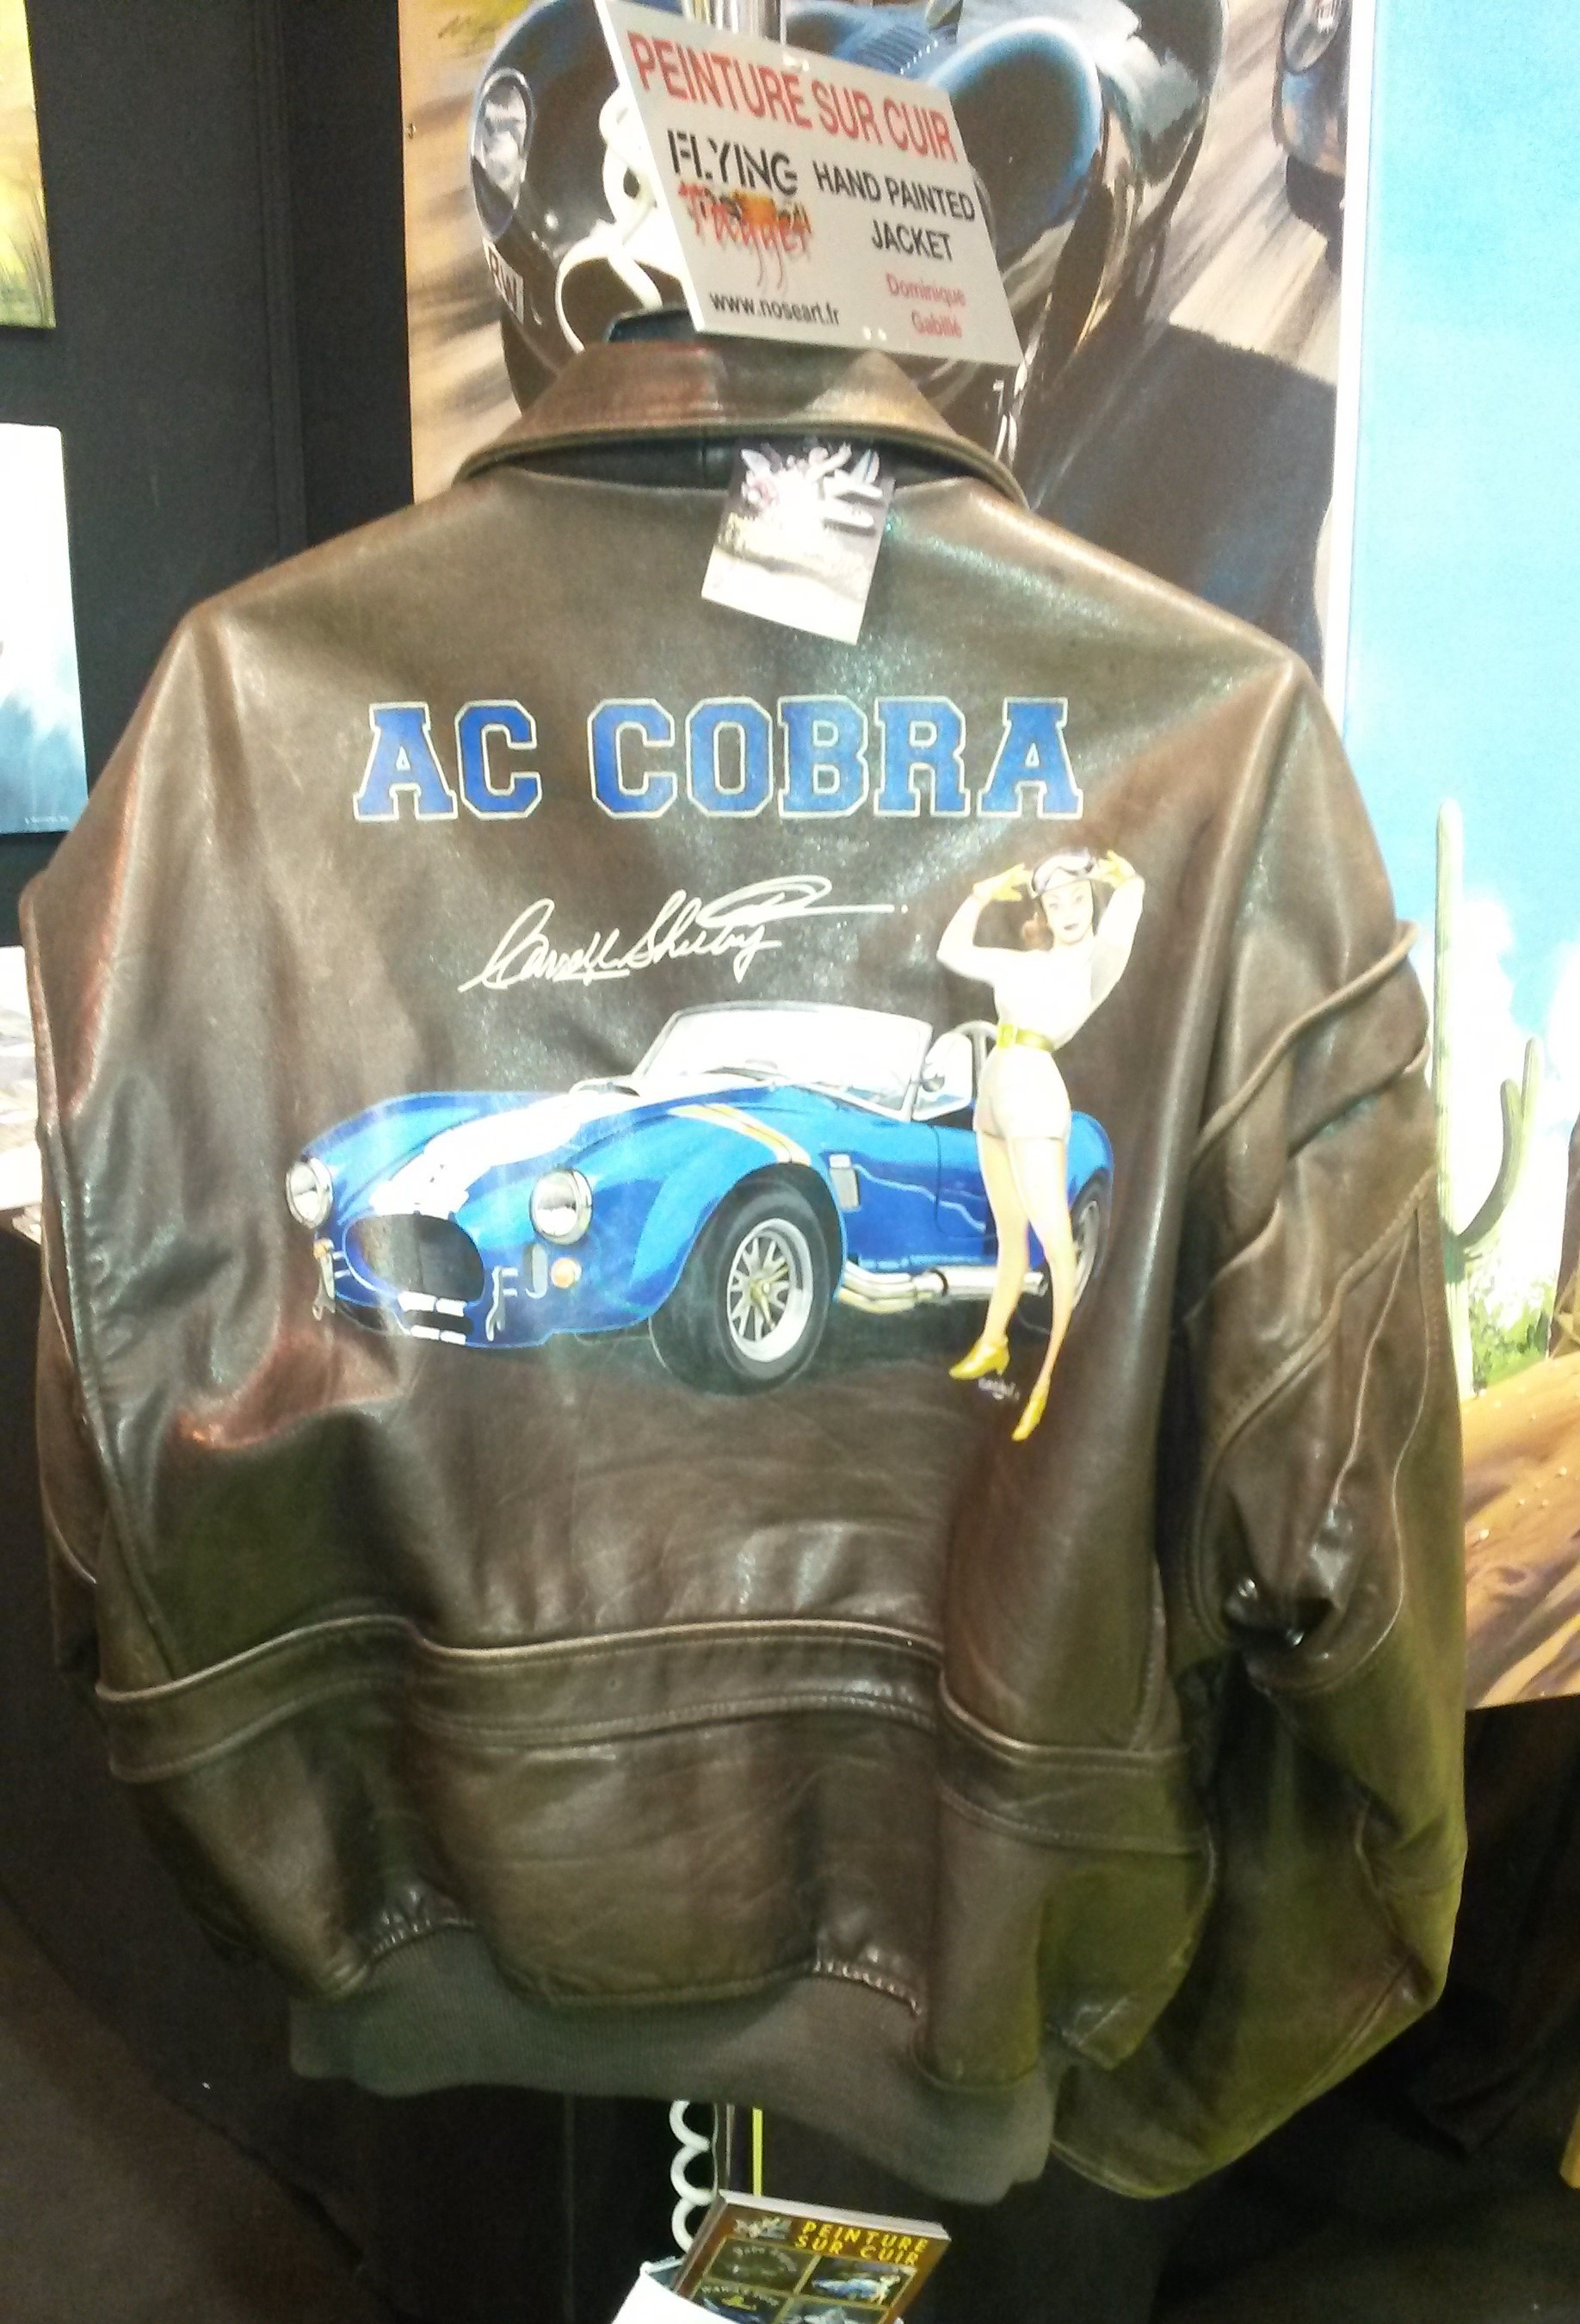 Cobra33 à Rétromobile 2016